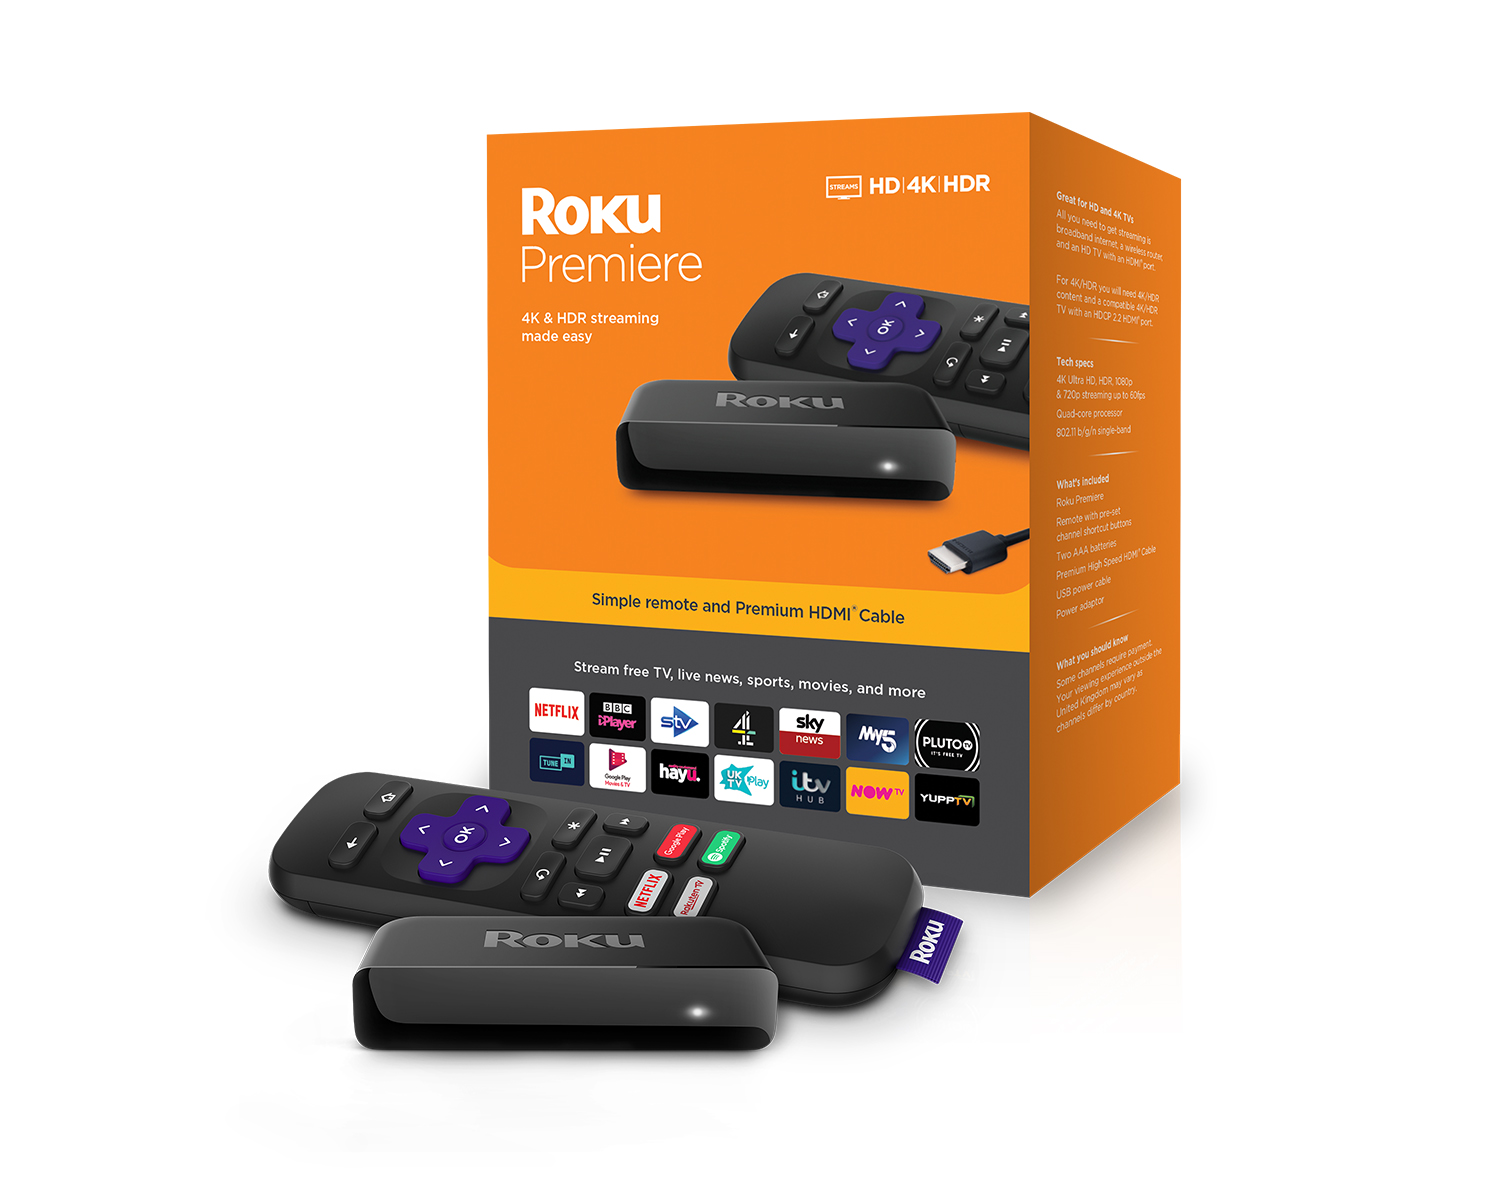 Roku's Premiere is the brand's most affordable 4K supporting device